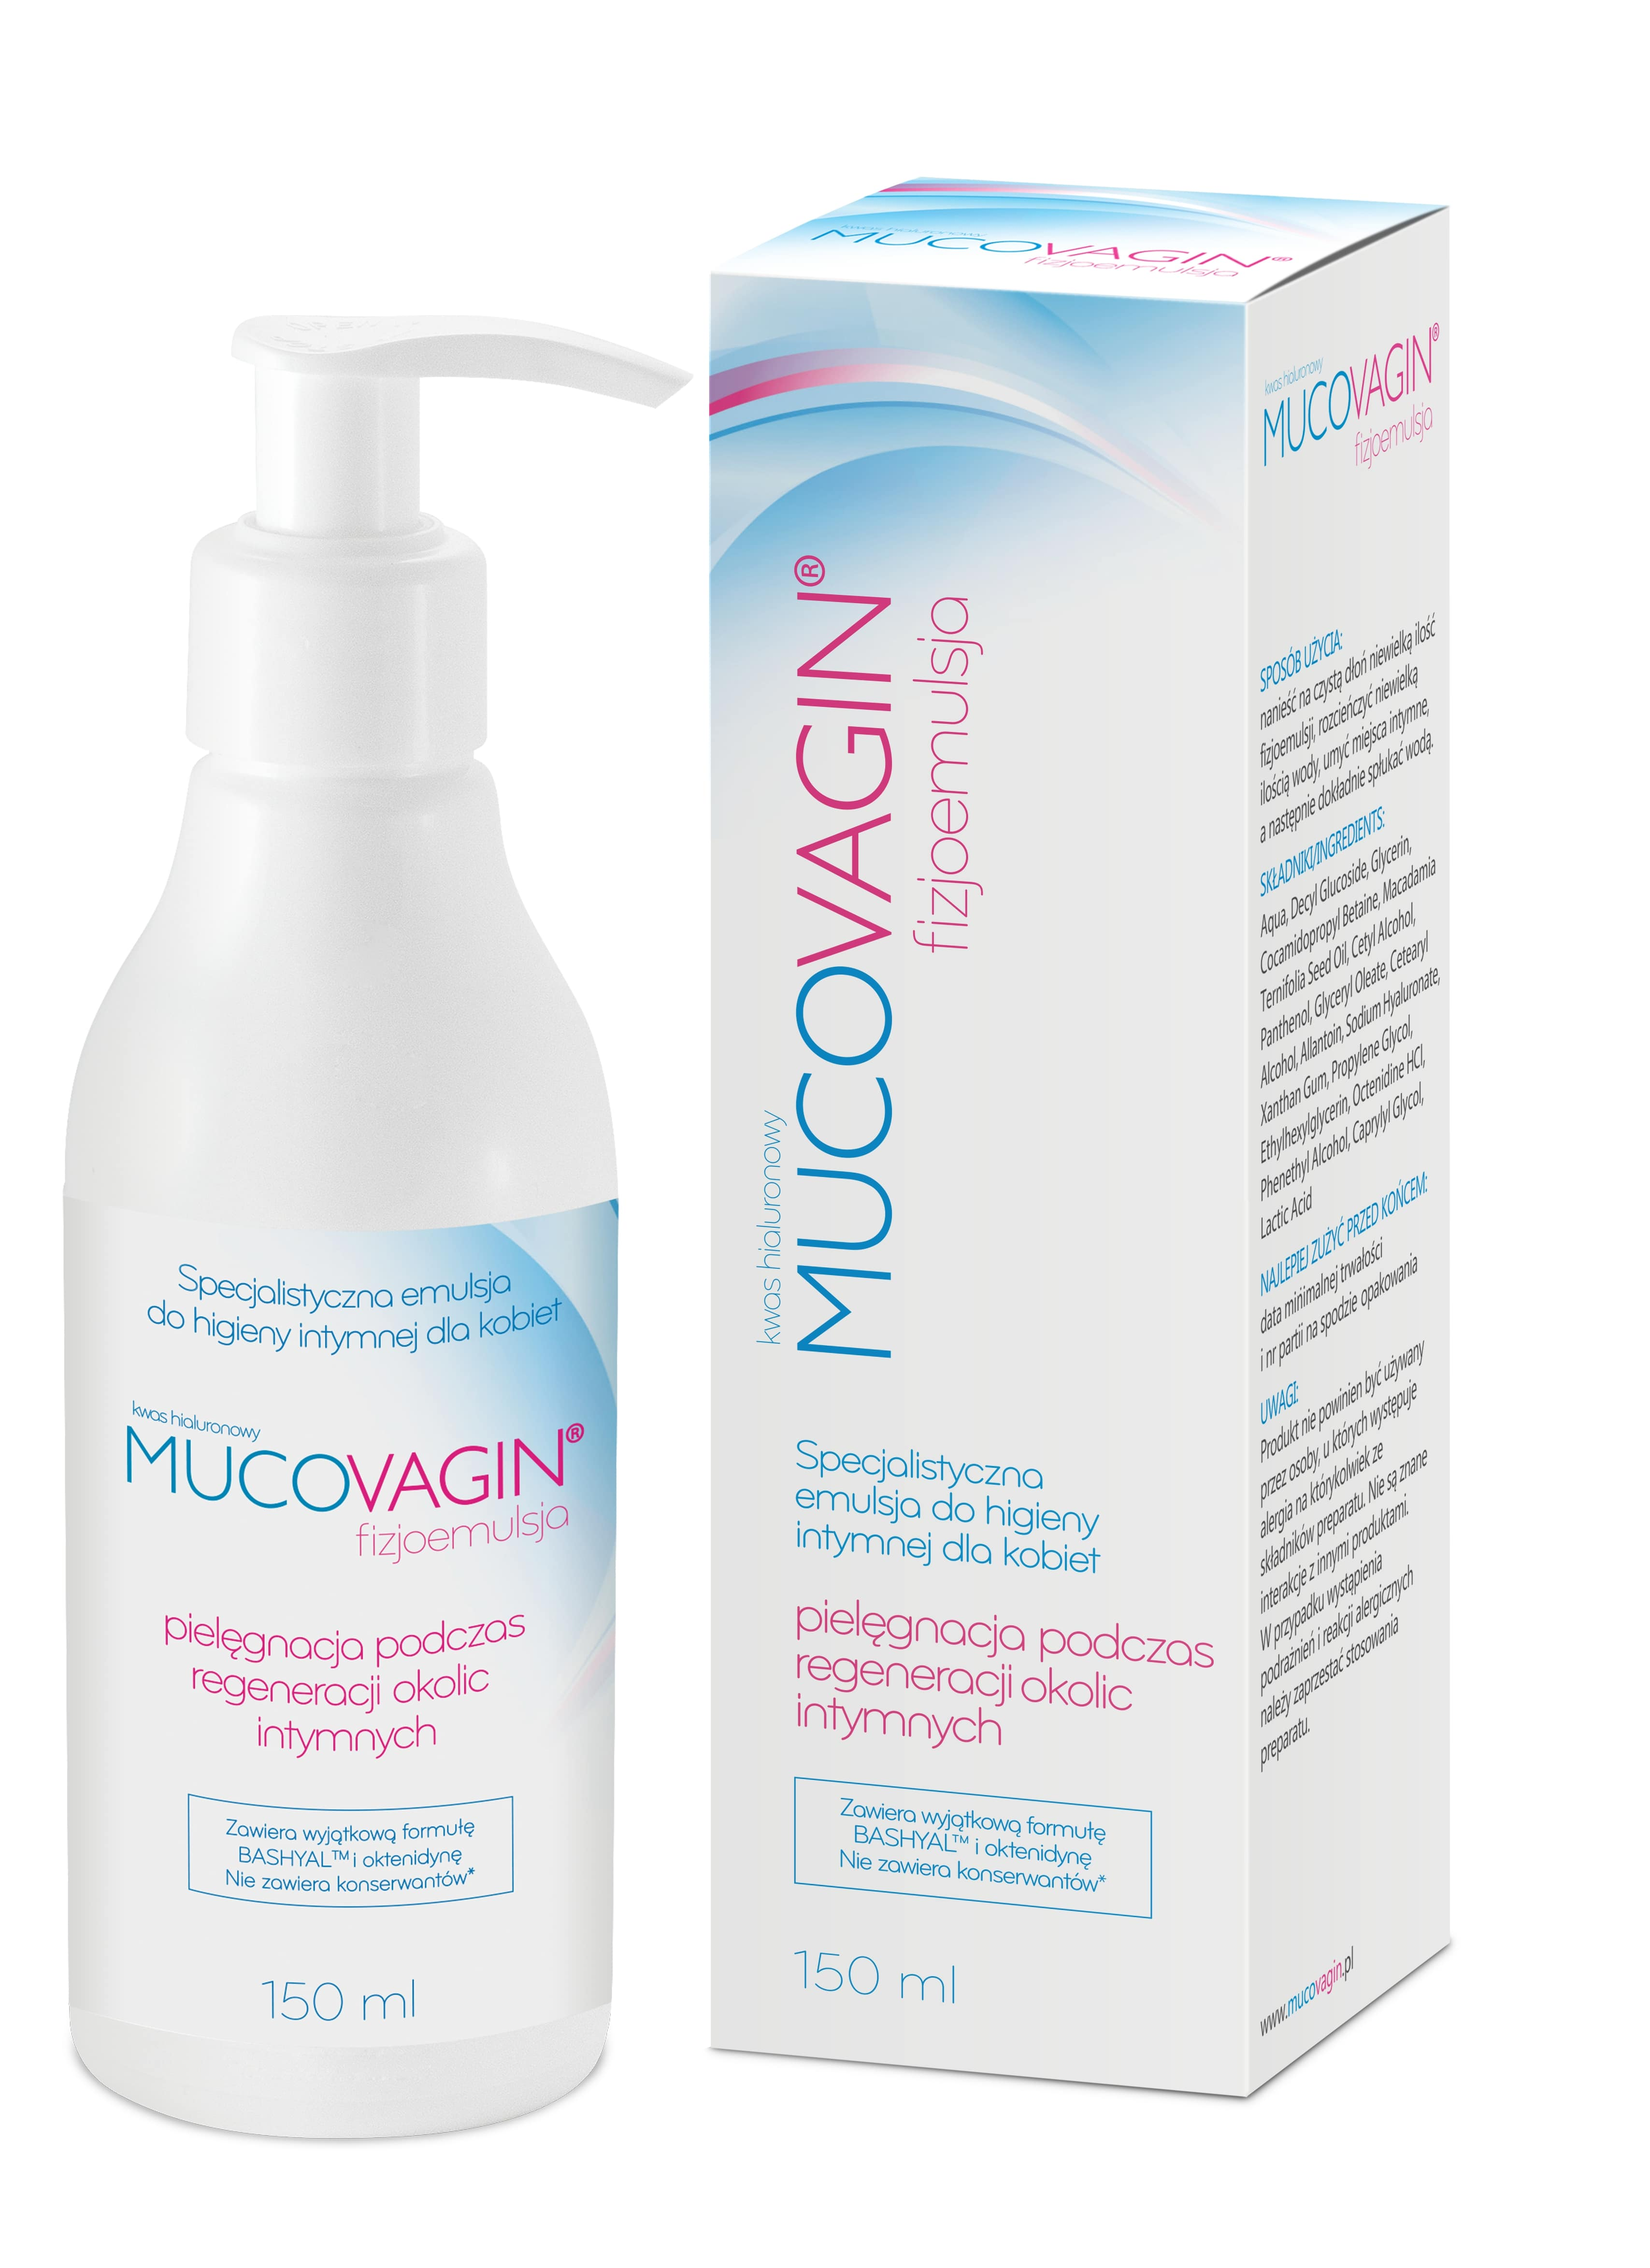 Mucovagin physiological emulsion